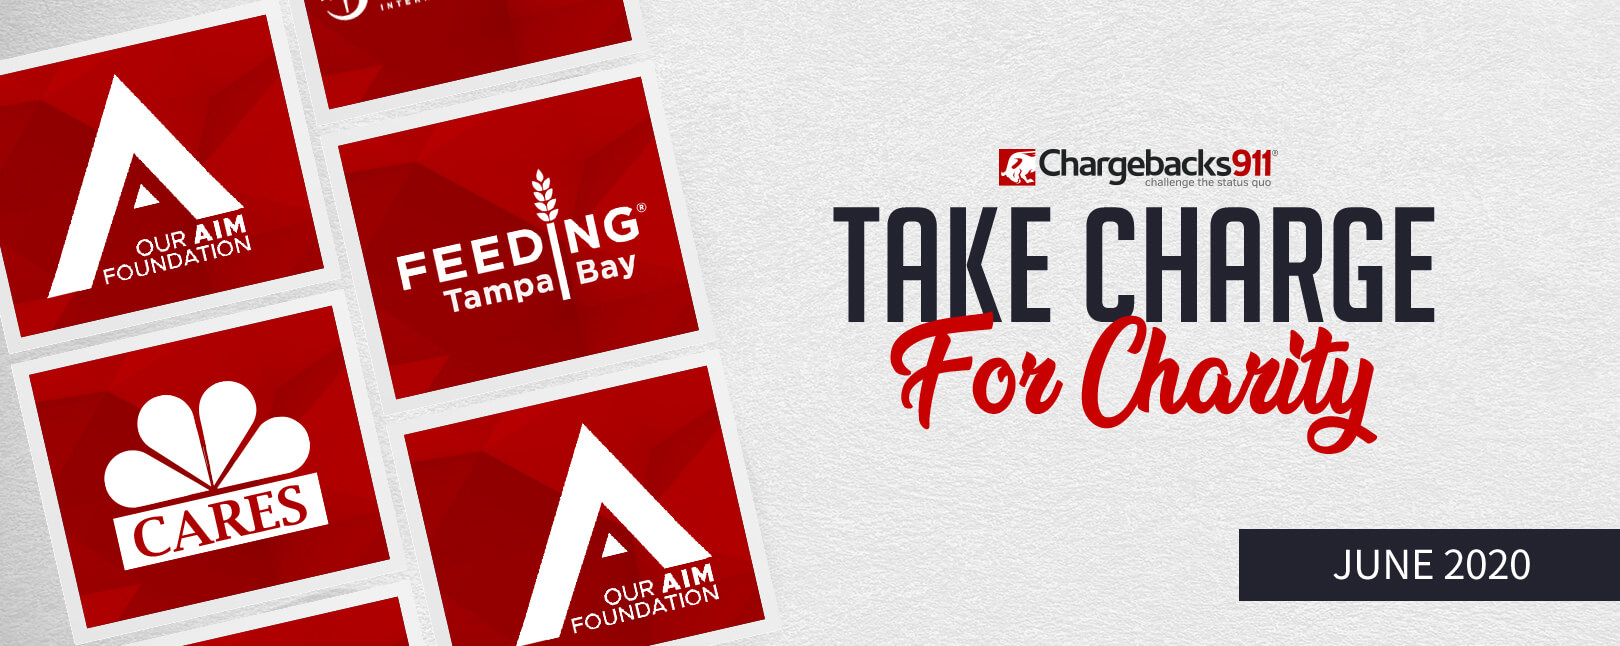 Take Charge for Charity – June 2020